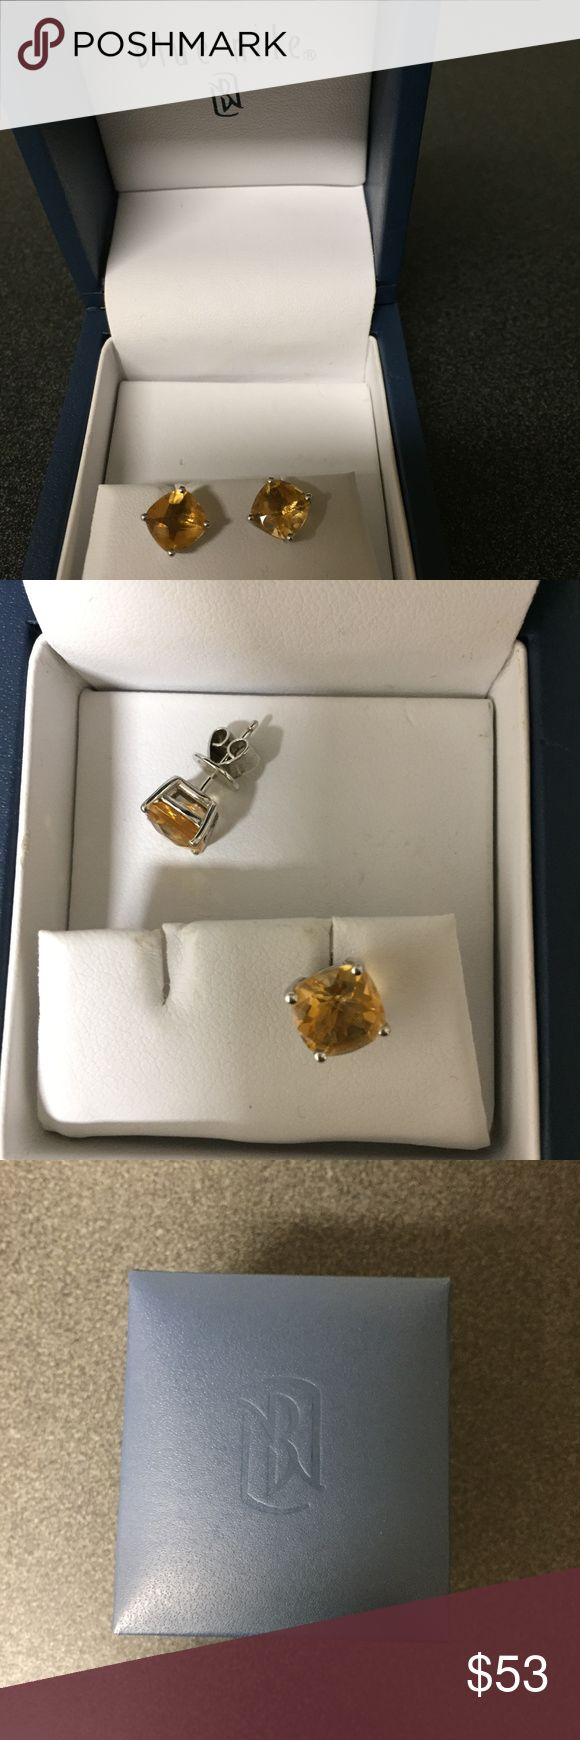 BLUE NILE Cushion Cut Silver Citrine Stud Earrings Blue Nile citrine stud earrings for pierced ears. Only worn a few times, and comes with the original box.      November birth stone     Cushion cut (slightly rounded square shape)     Four-prong basket setting     Silver Blue Nile Jewelry Earrings